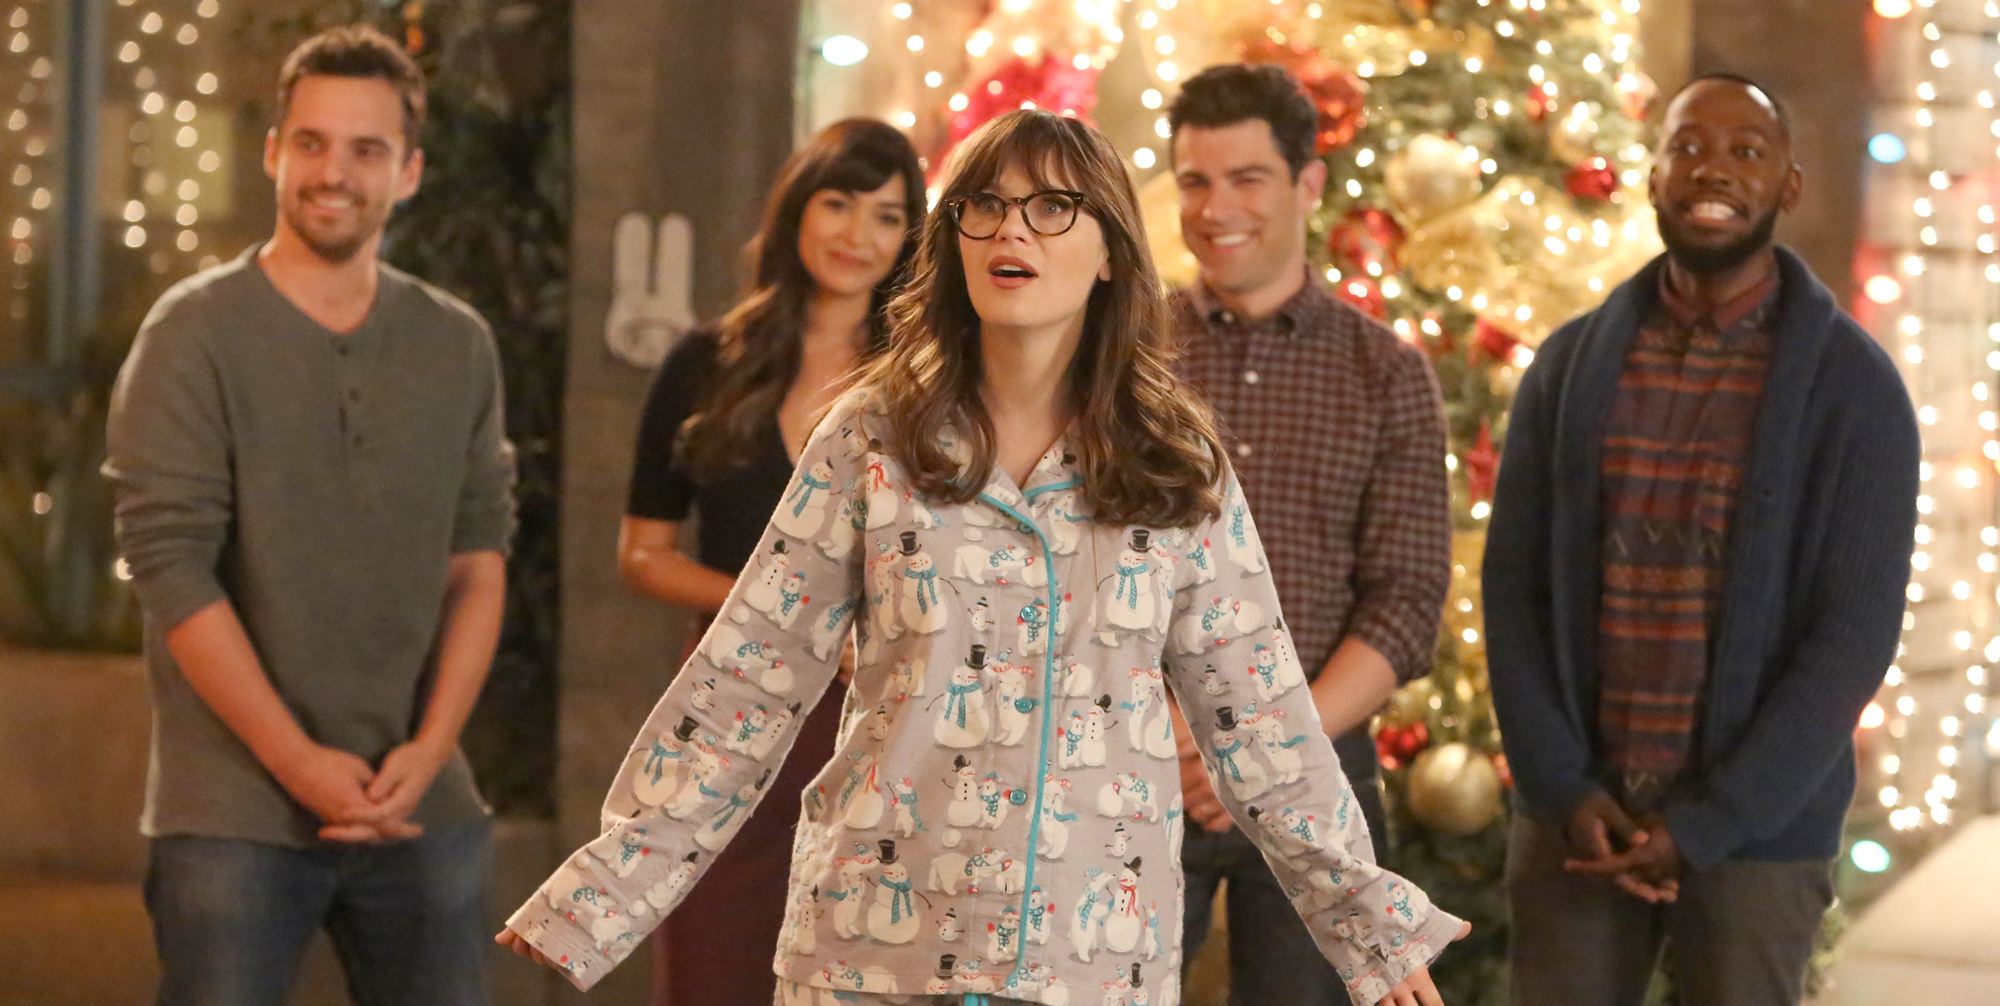 The cover image for the blog post. It depicts the cast of 'New Girl'. The character Jessica Day (Zooey Deschanel) stands in her pajamas with a look of wonder on her face. The rest of the cast stands behind her, smiling.